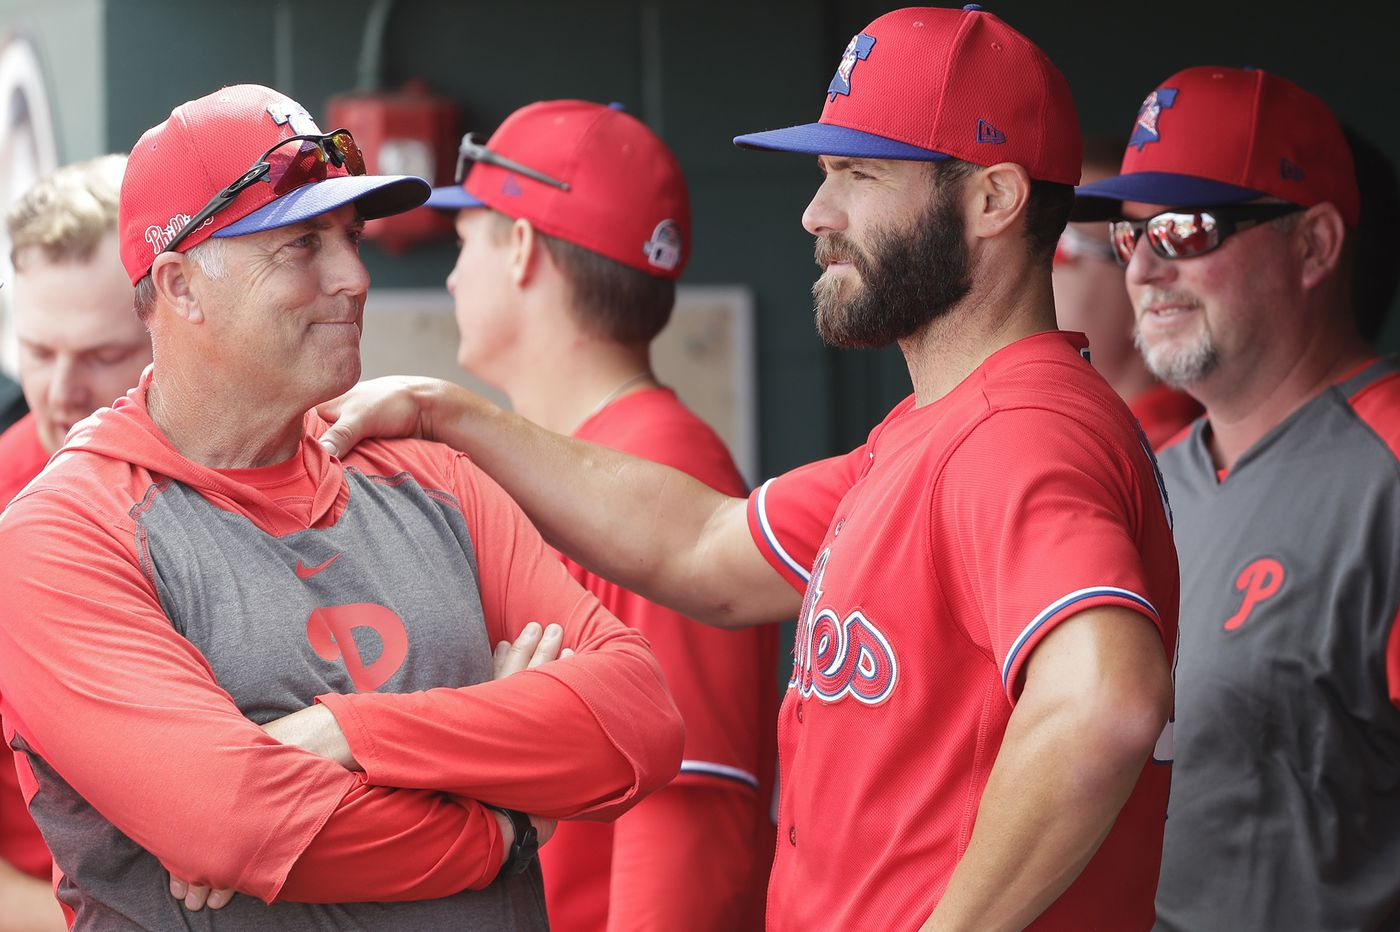 Phillies pitching coach Bryan Price absent from Saturday's game, following MLB's coronavirus protocols